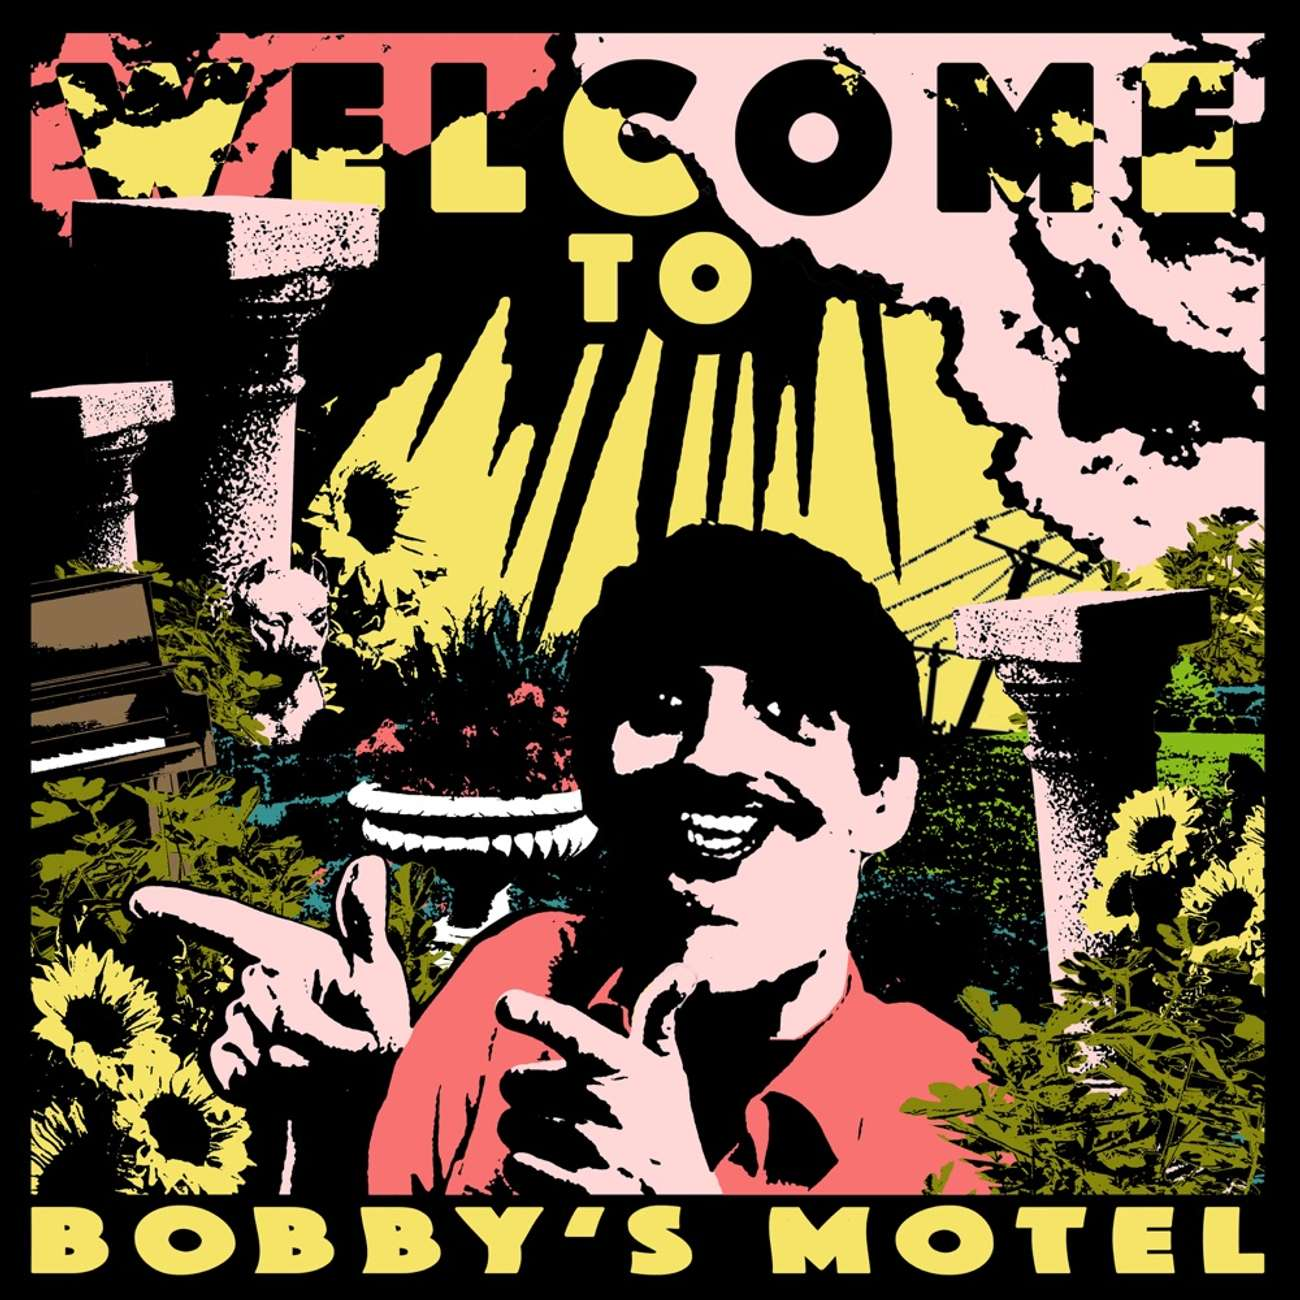 Welcome to Bobby's Motel by Pottery